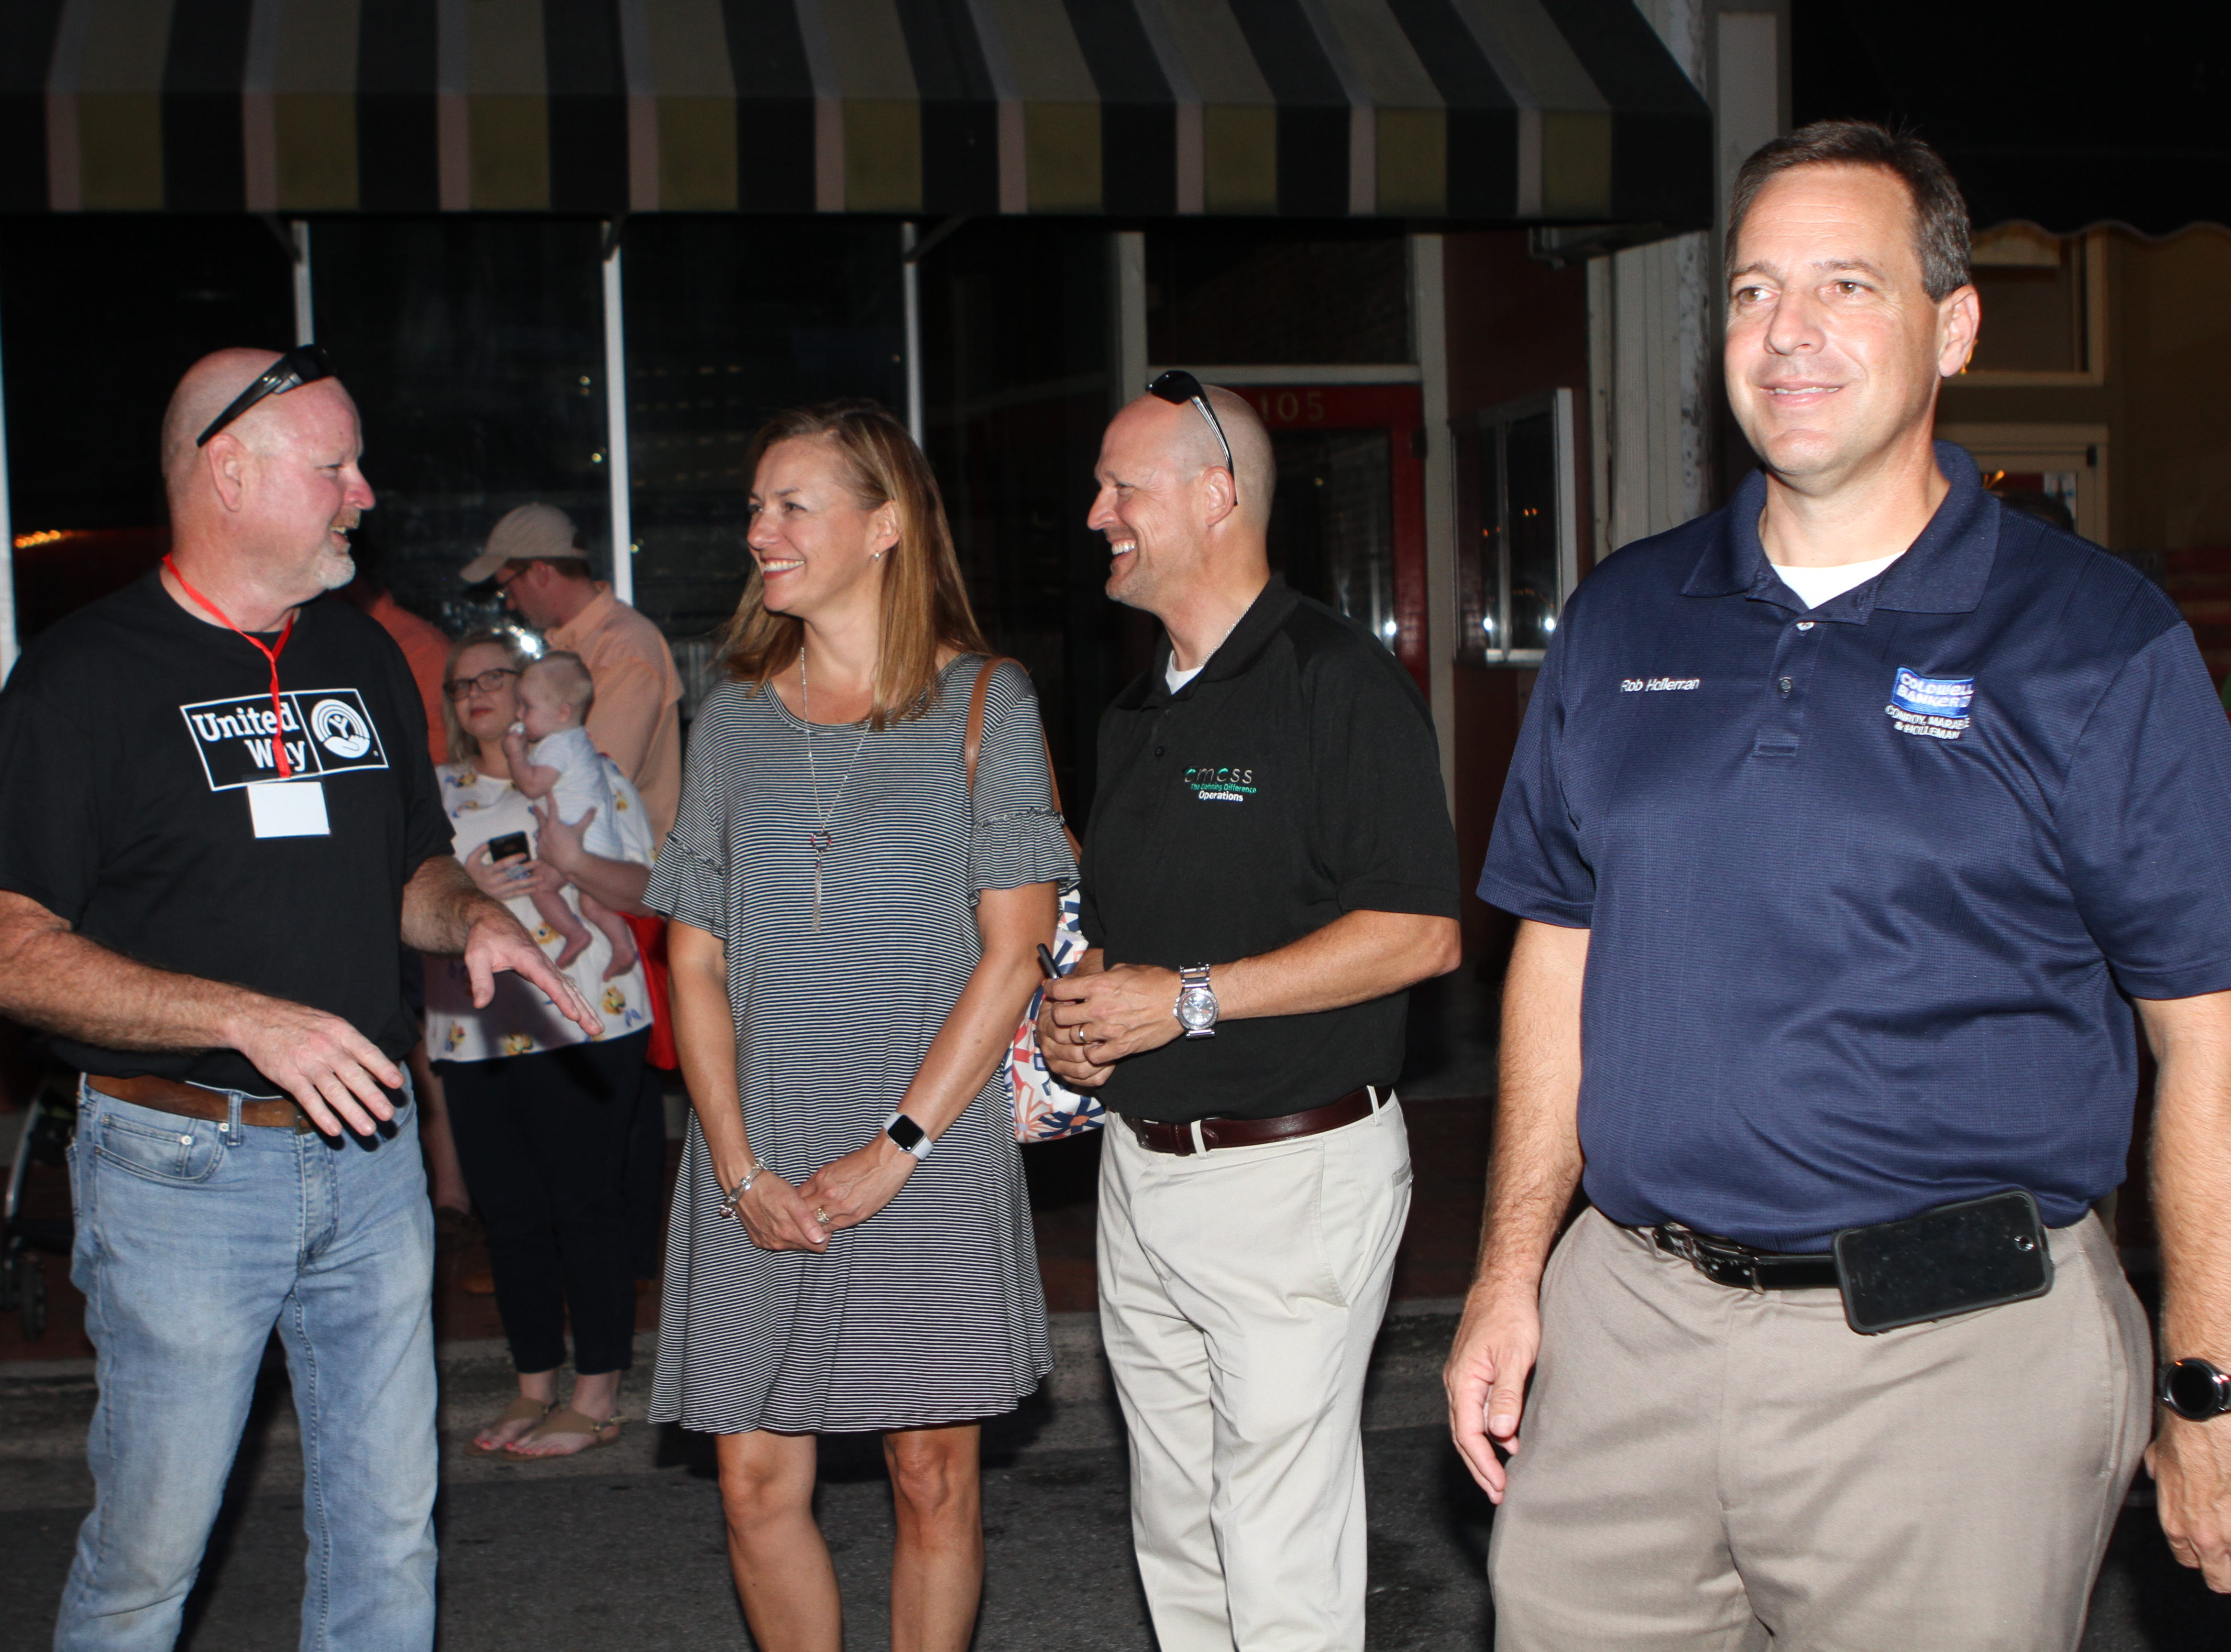 United Way of Clarksville used Roxy Regional Theatre's newly restored marquee to announce its 2018 campaign fundraising goal Thursday night.